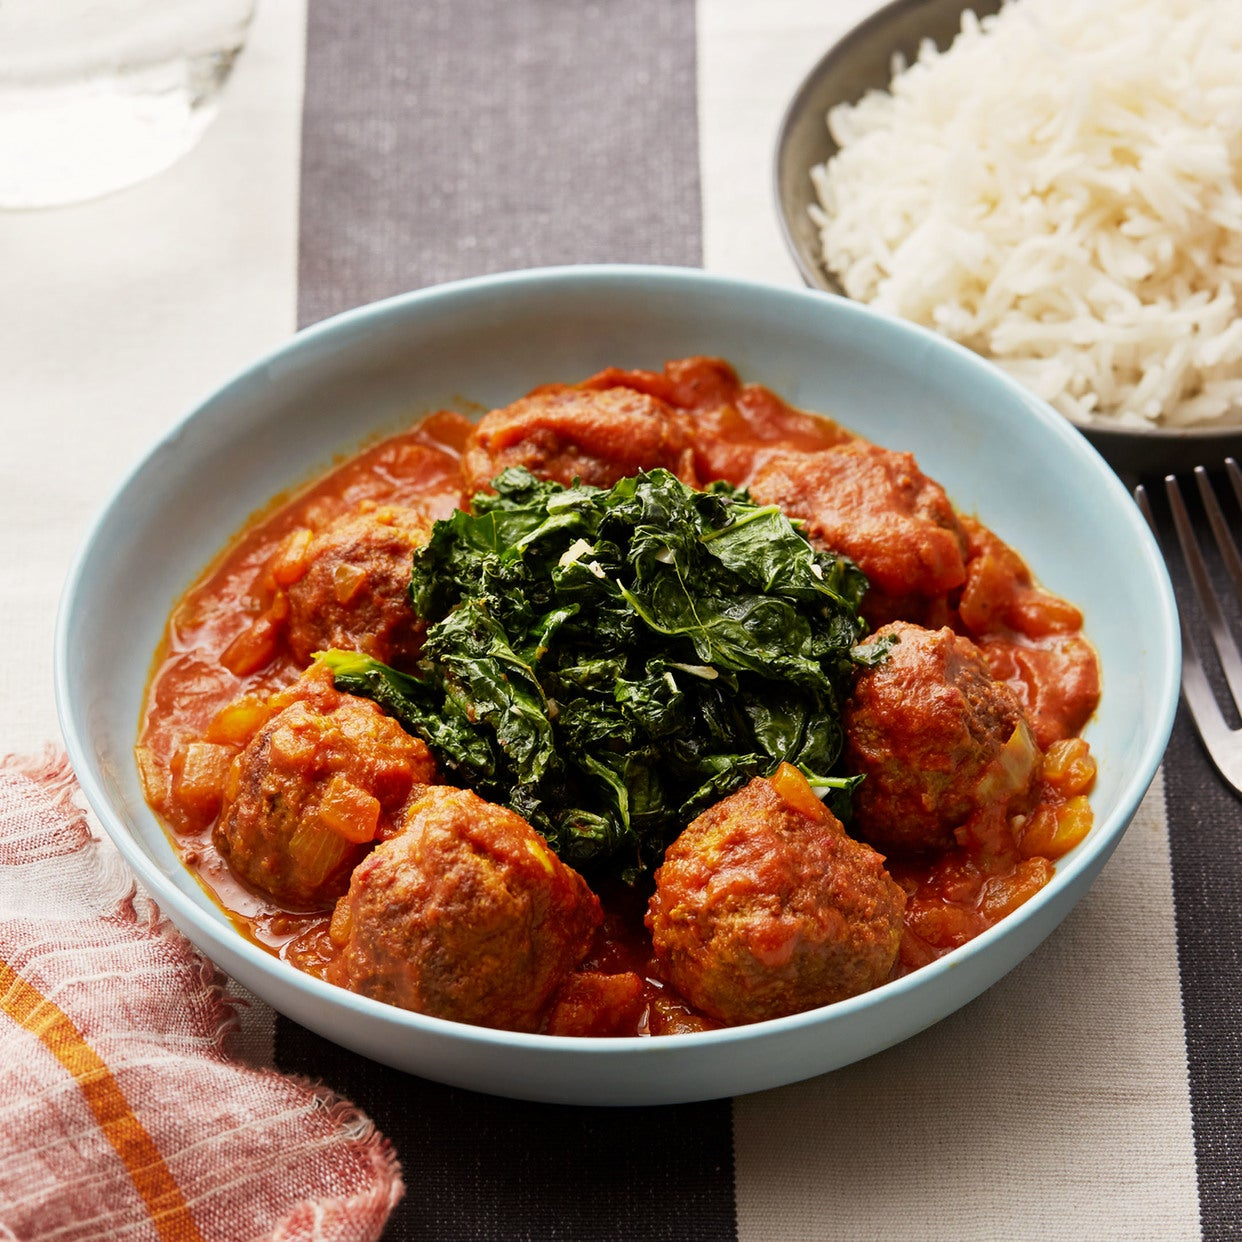 Egyptian Meatballs with Spicy Tomato Sauce, Kale & Rice